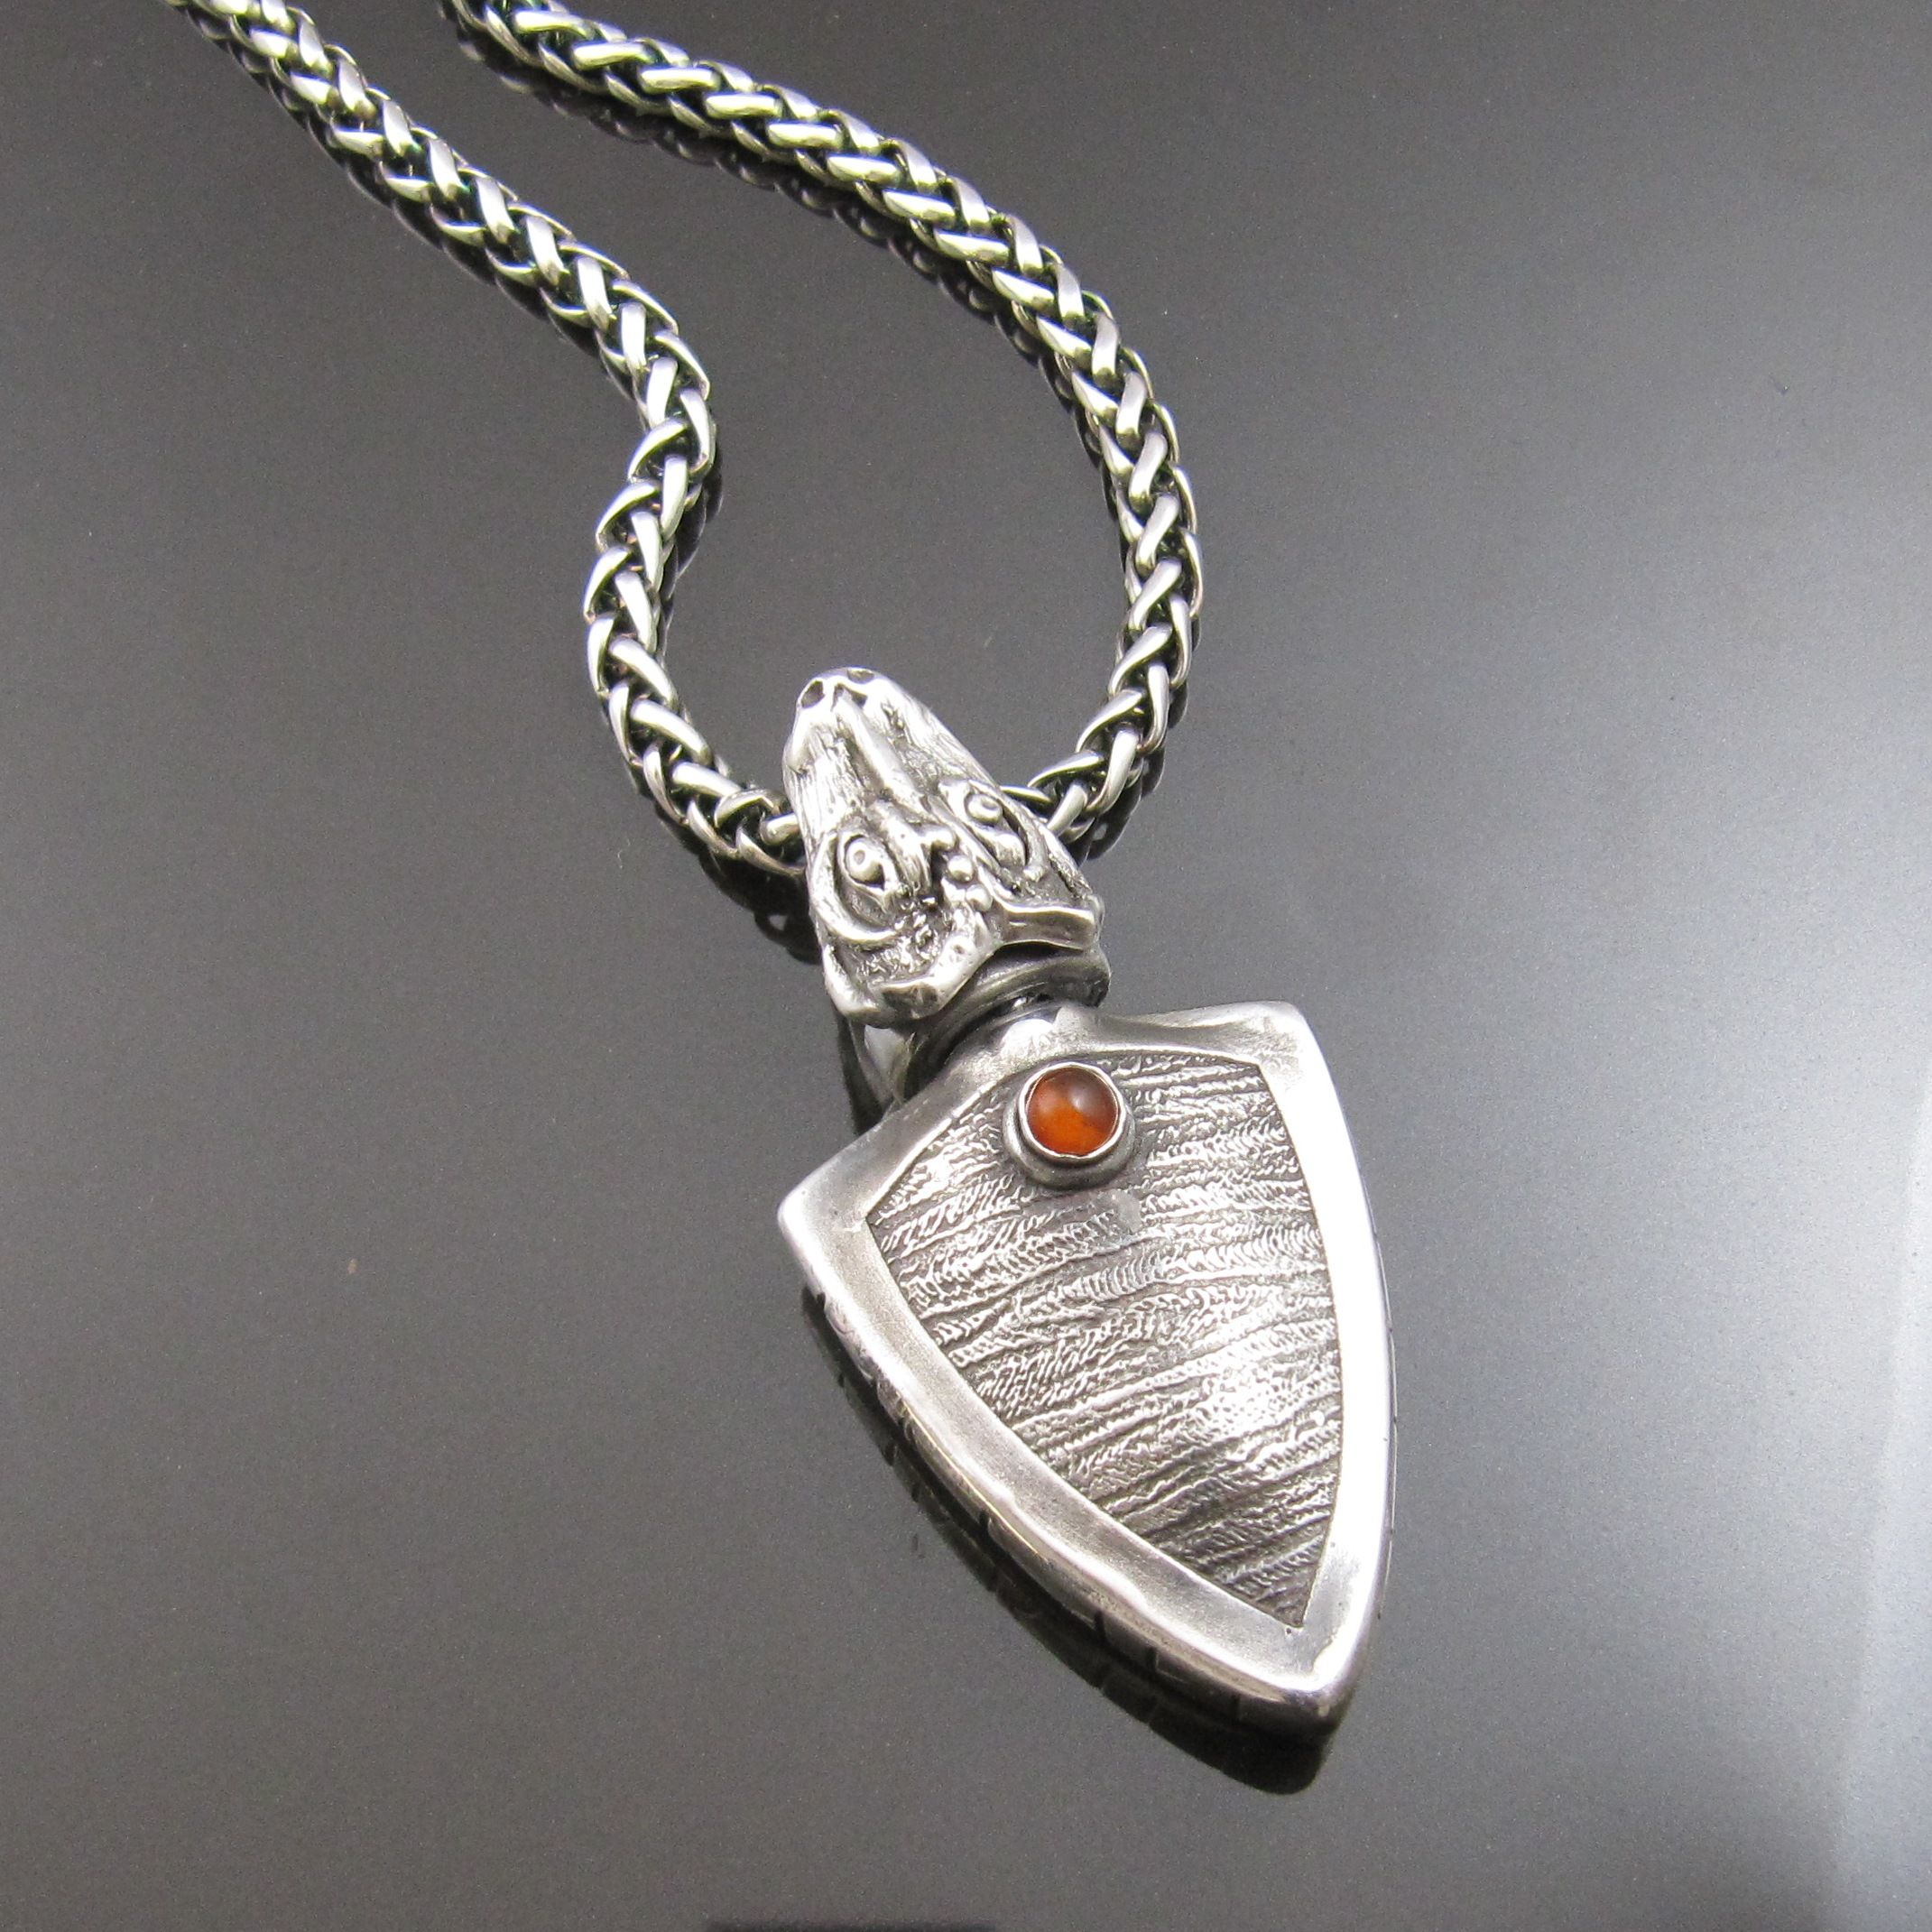 Midsummer's Dream Metal Clay Retreat Project #1 Freya's Tears Amulet by Tracey Spurgin http://st3729.wix.com/metal-clay-retreat